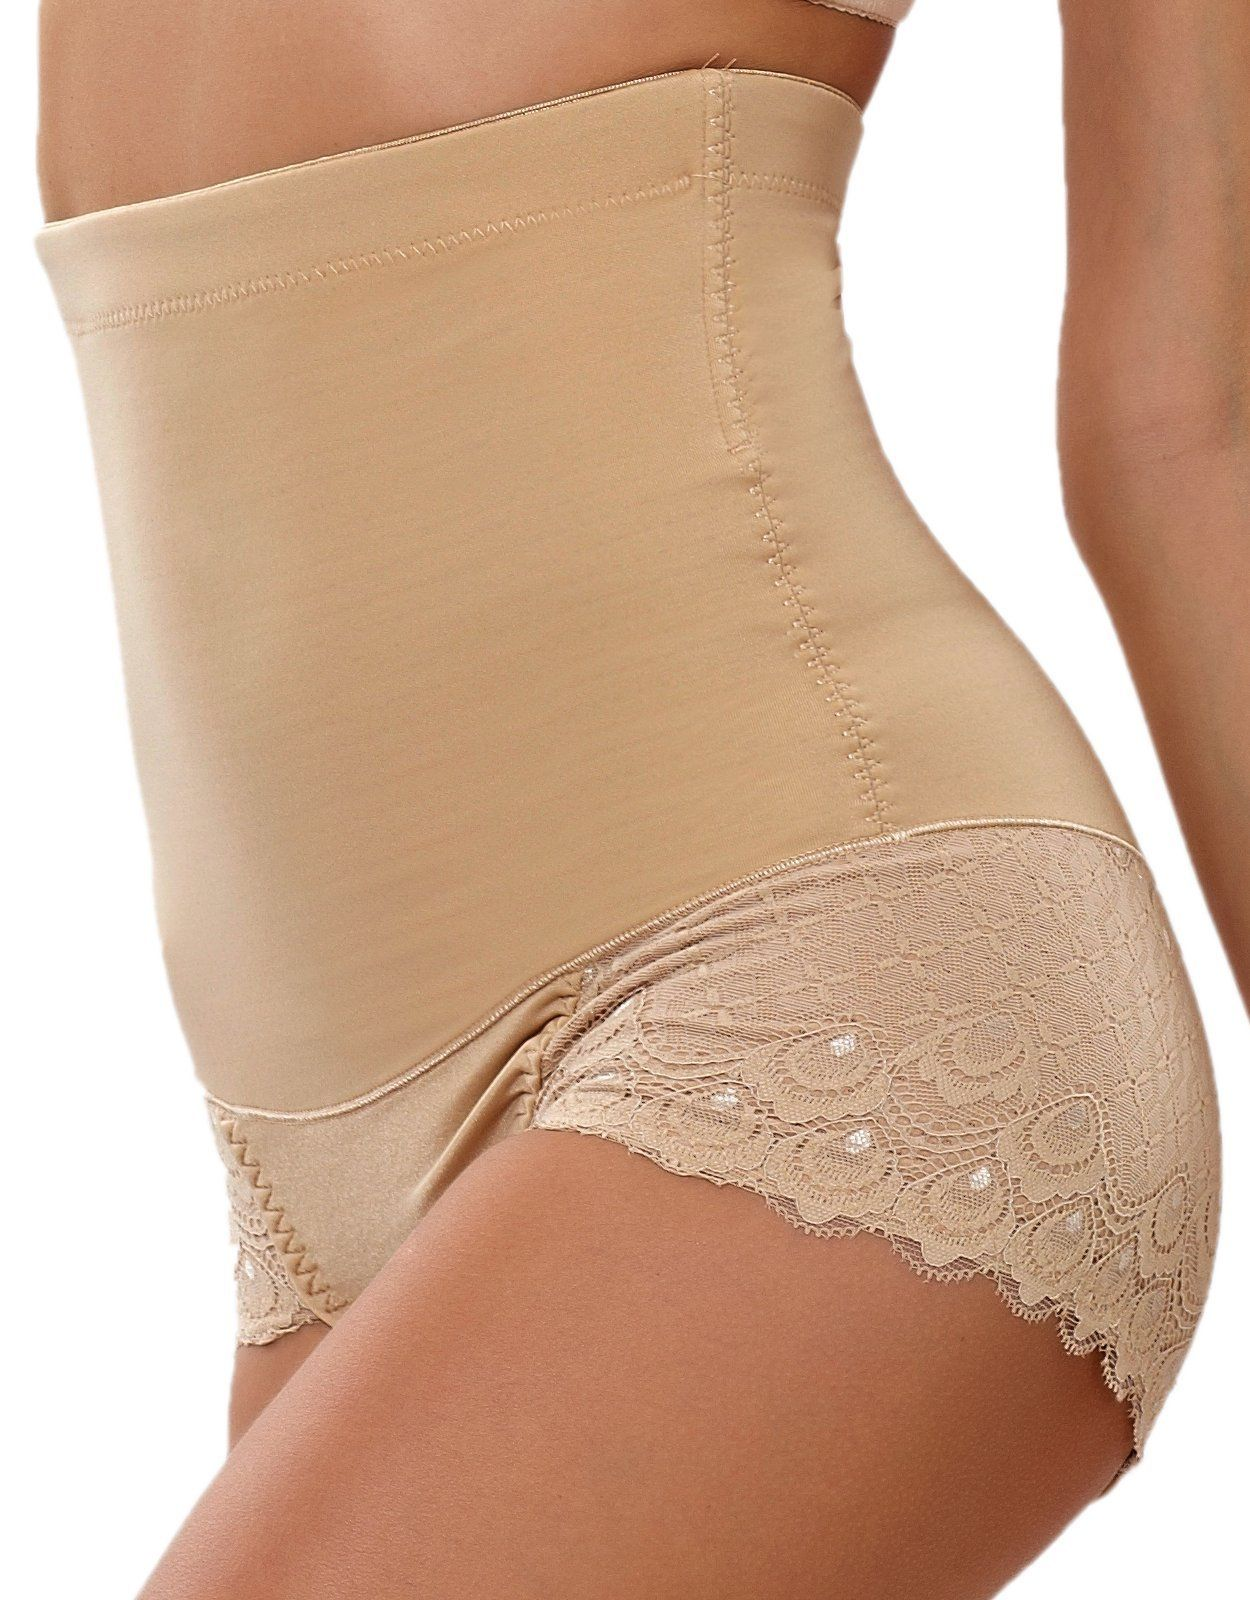 bce2cd00e975d Lynmiss Body Shaper Butt Lifter Shapewear High Waist Tummy Control Panty Slim  Waist Trainer BeigeL     More info could be found at the image url.